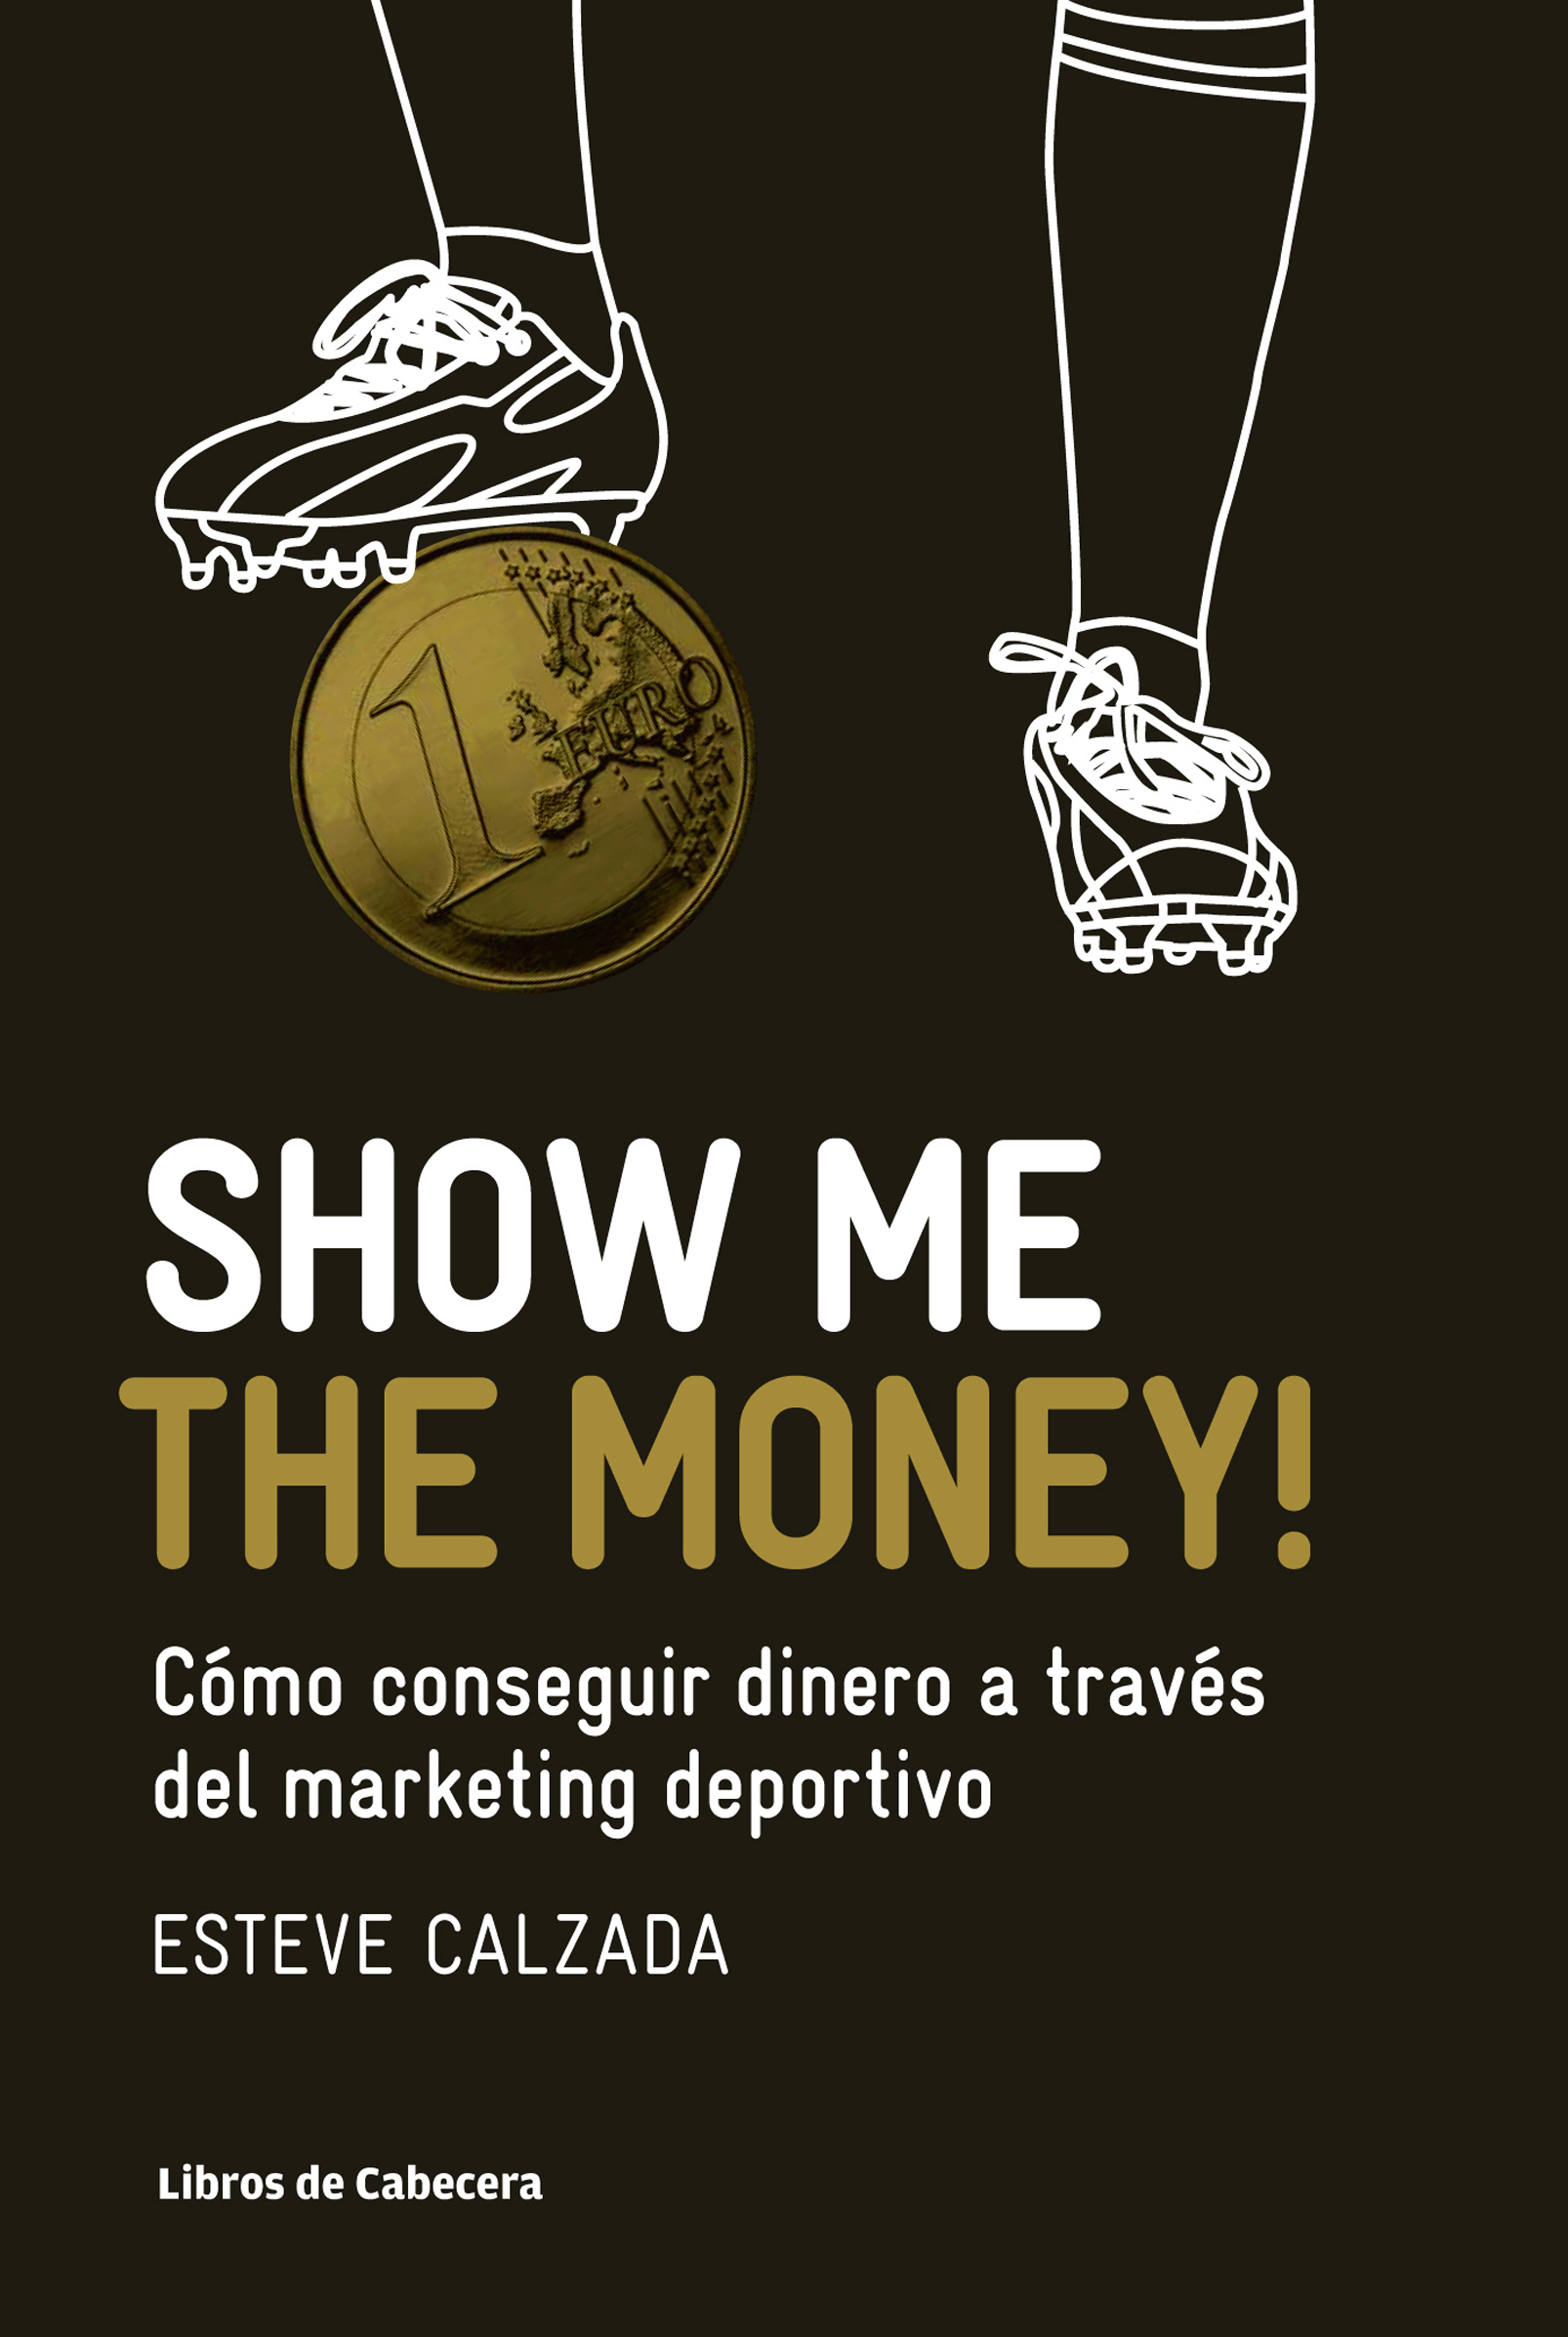 SHOW ME THE MONEY!. CÓMO CONSEGUIR DINERO A TRAVÉS DEL MARKETING DEPORTIVO